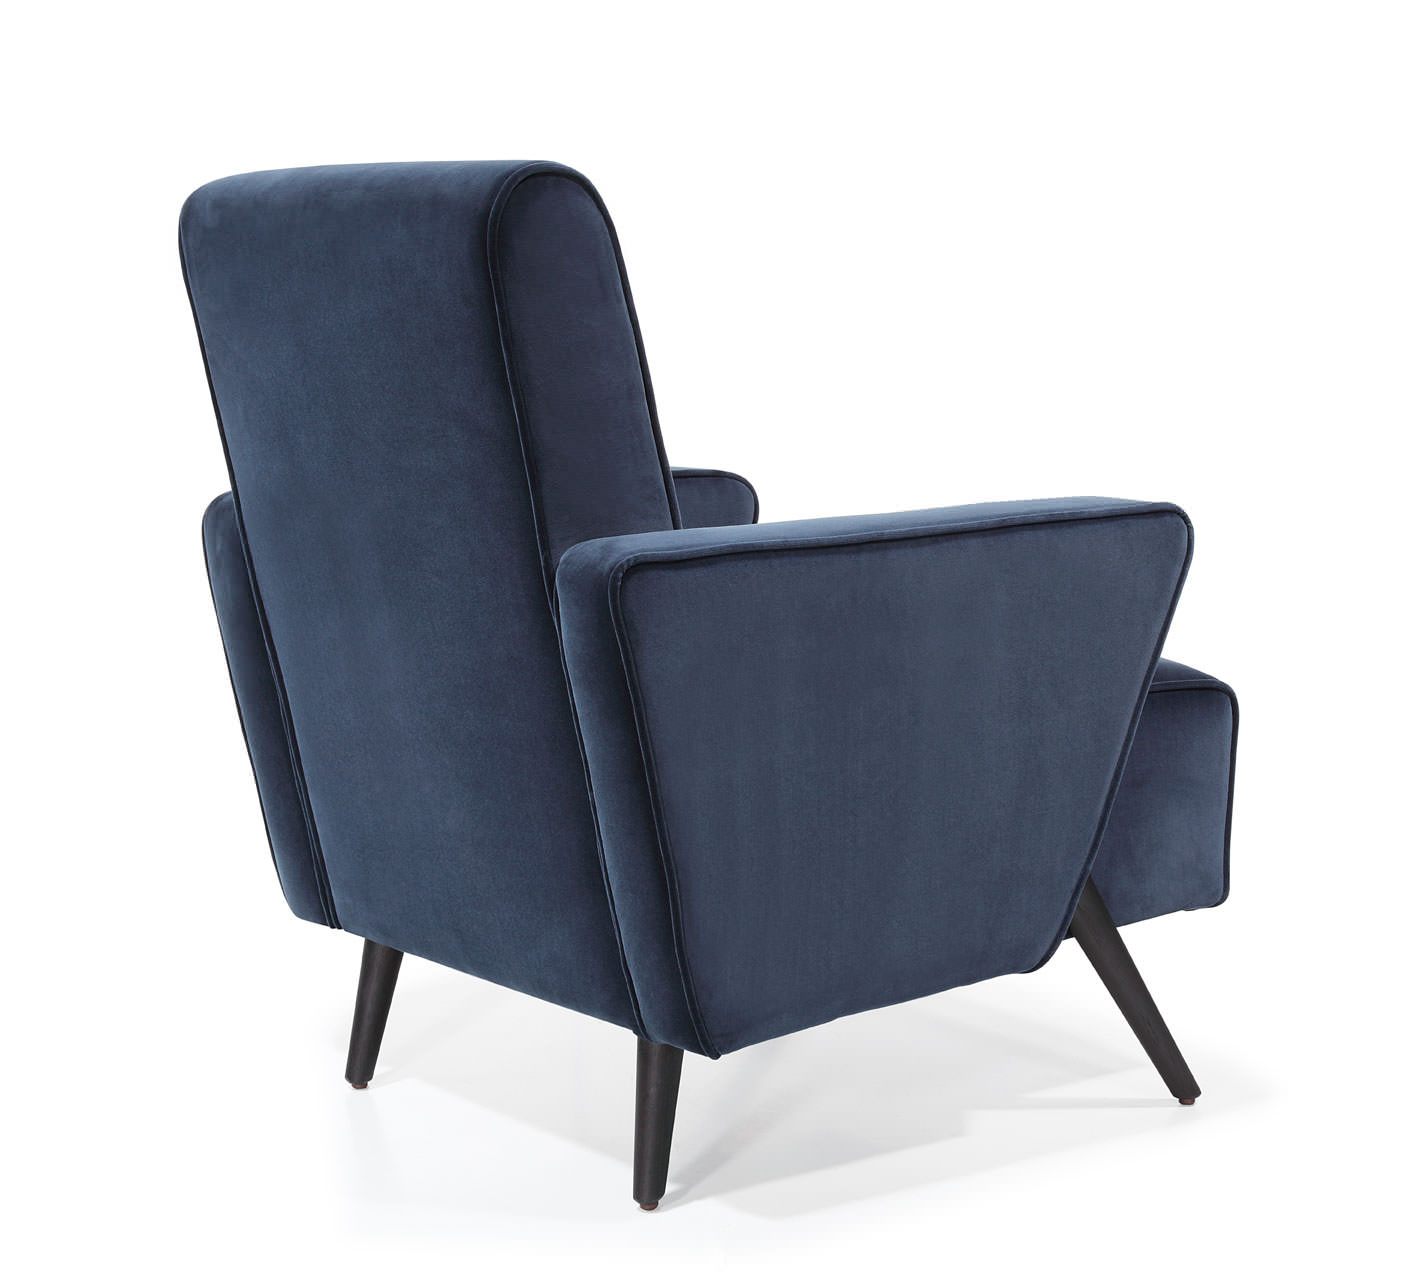 Sinfonia armchair - Products